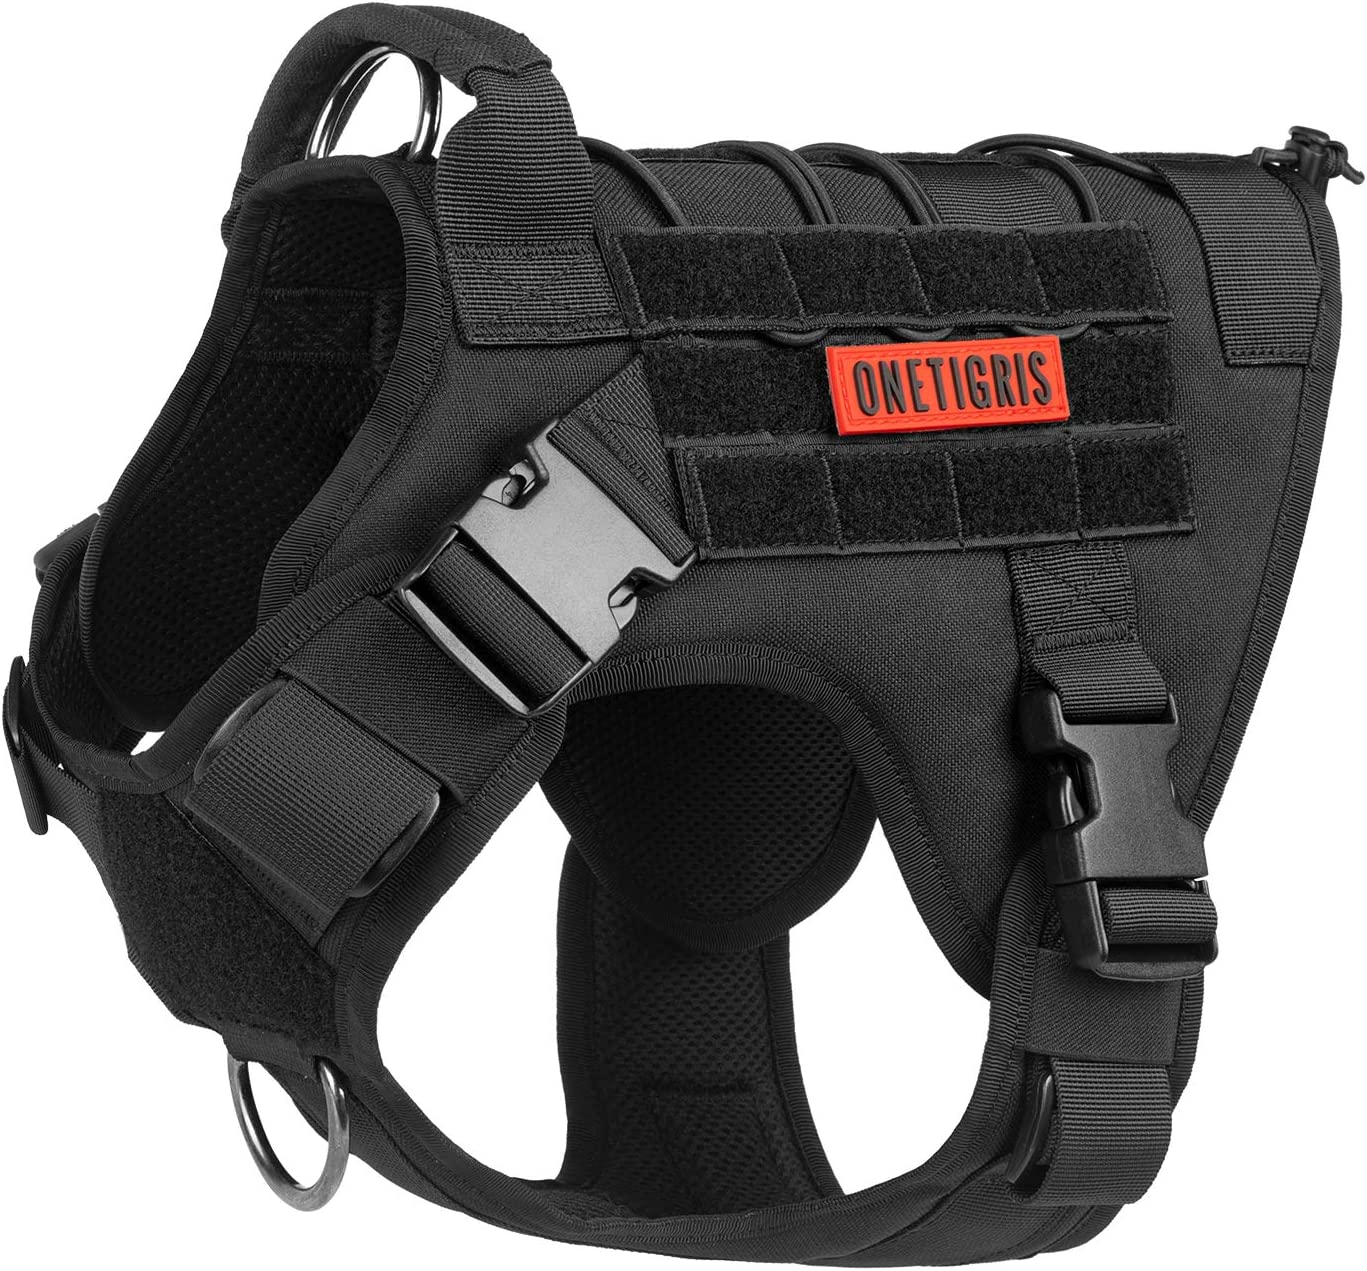 Image of the OneTigris Tactical Dog Harness Vest with Handle in black color, with brand patch in red color attached to it. Buckles and D-rings visible on one side.